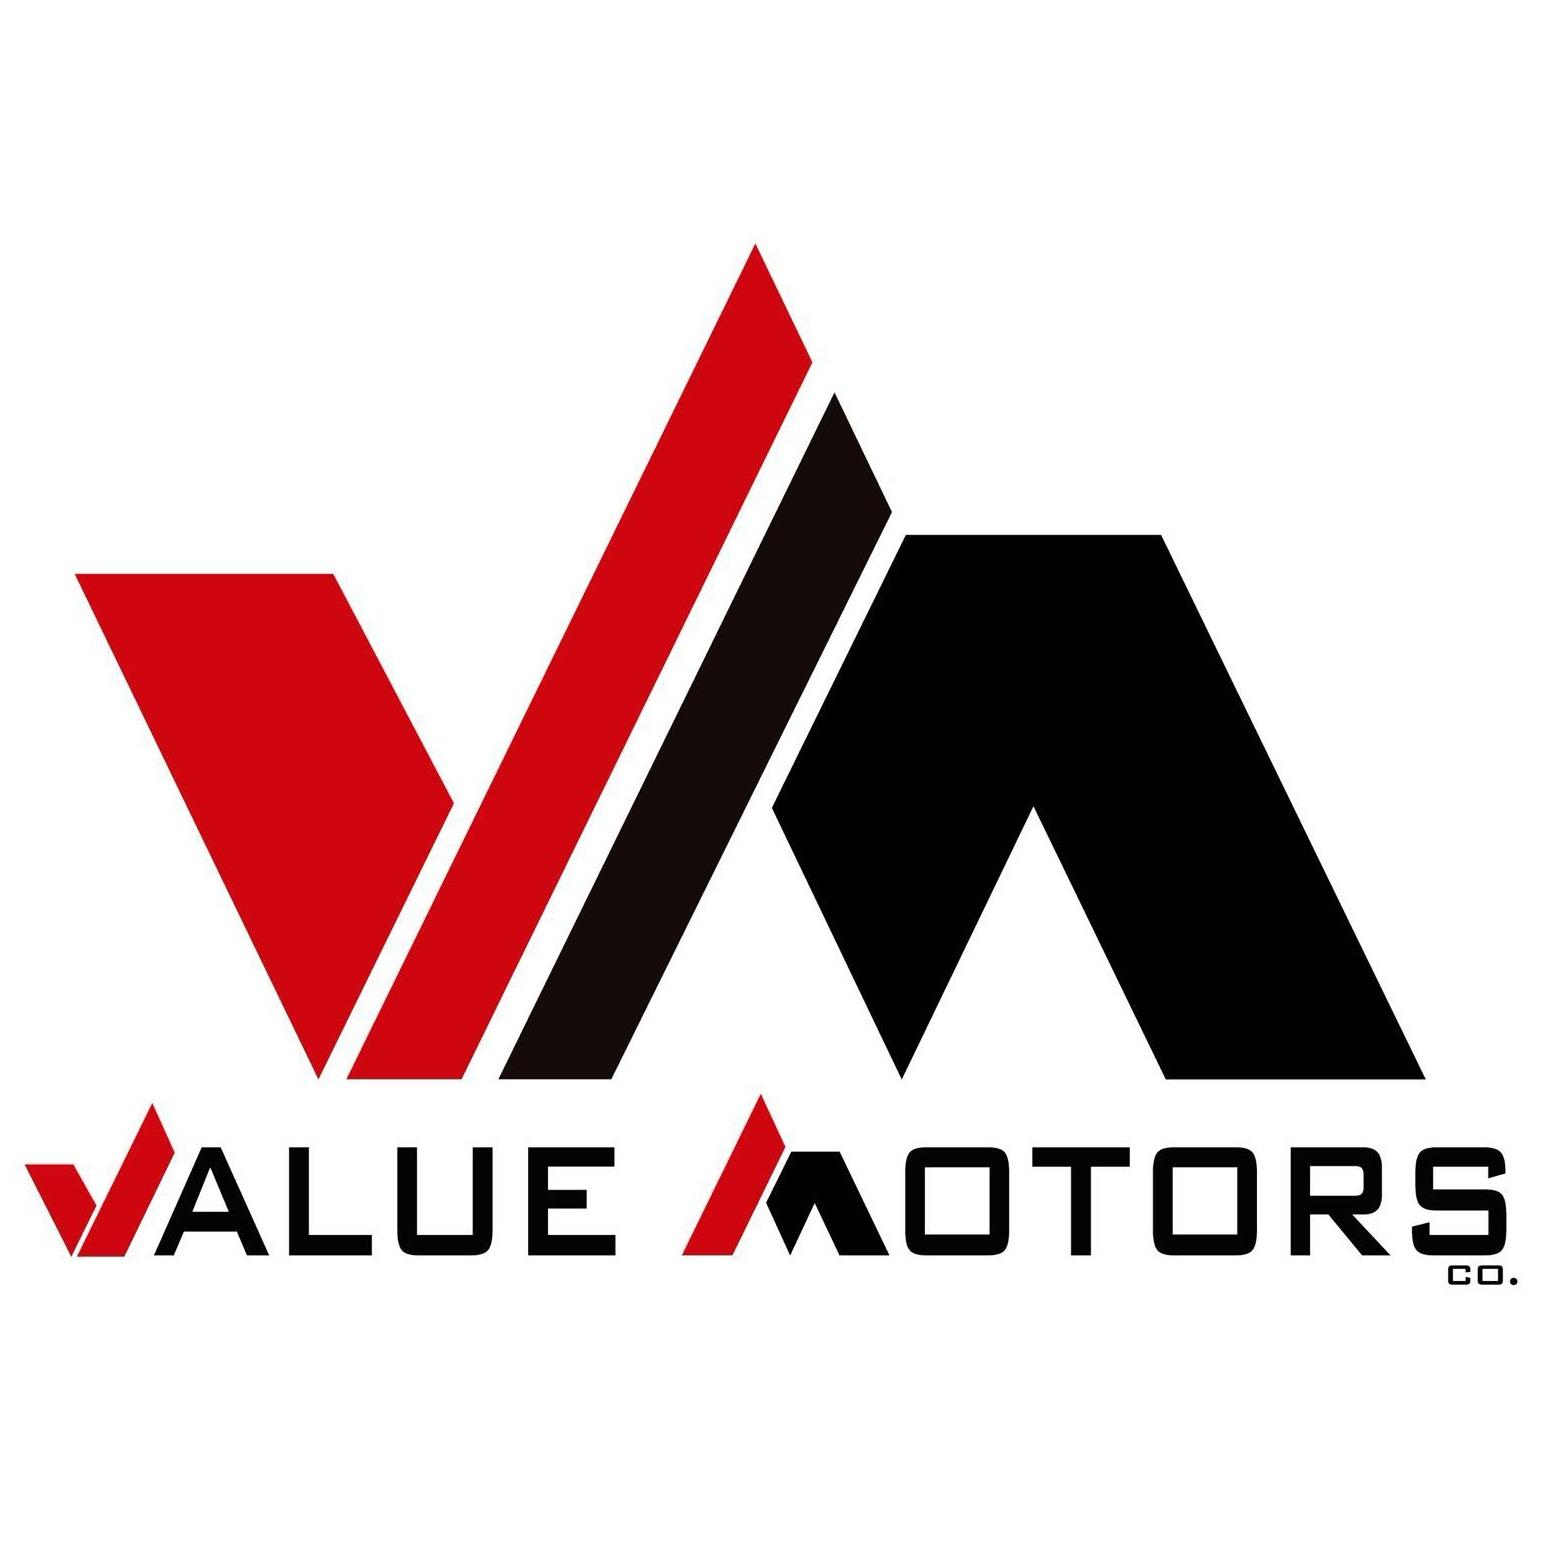 Value Motors Company Best Used Cars Metairie Kenner